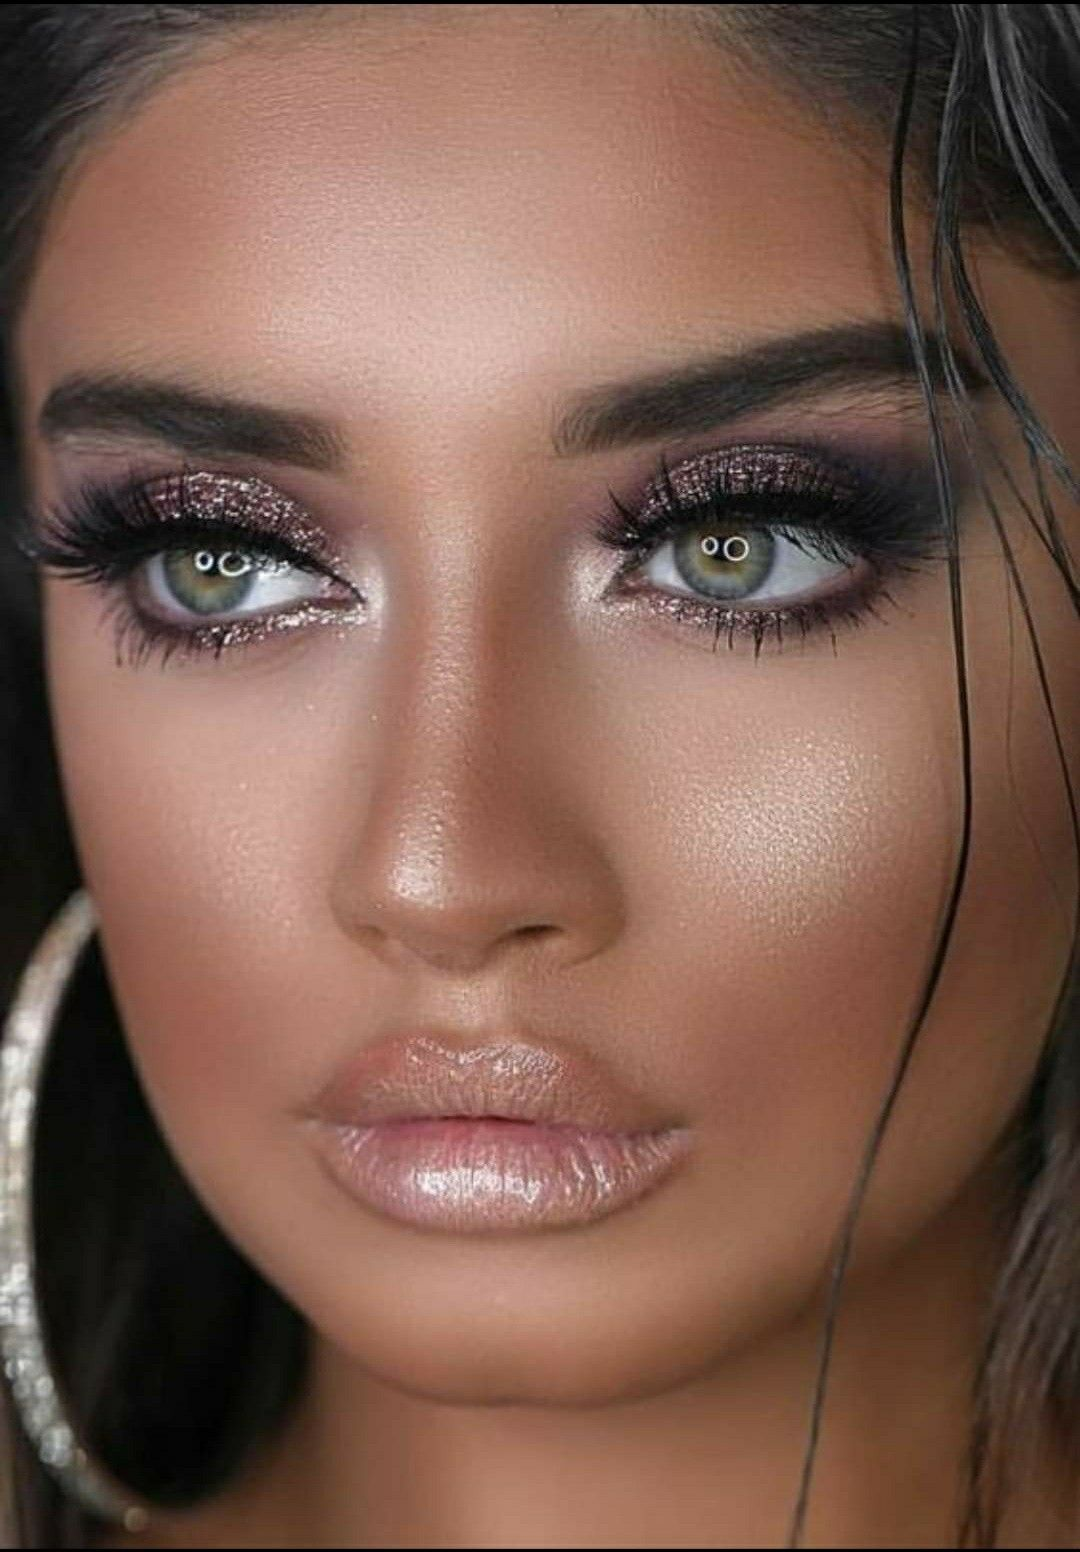 Pin by G on μακιγια in 2020 Wedding makeup, Bridal